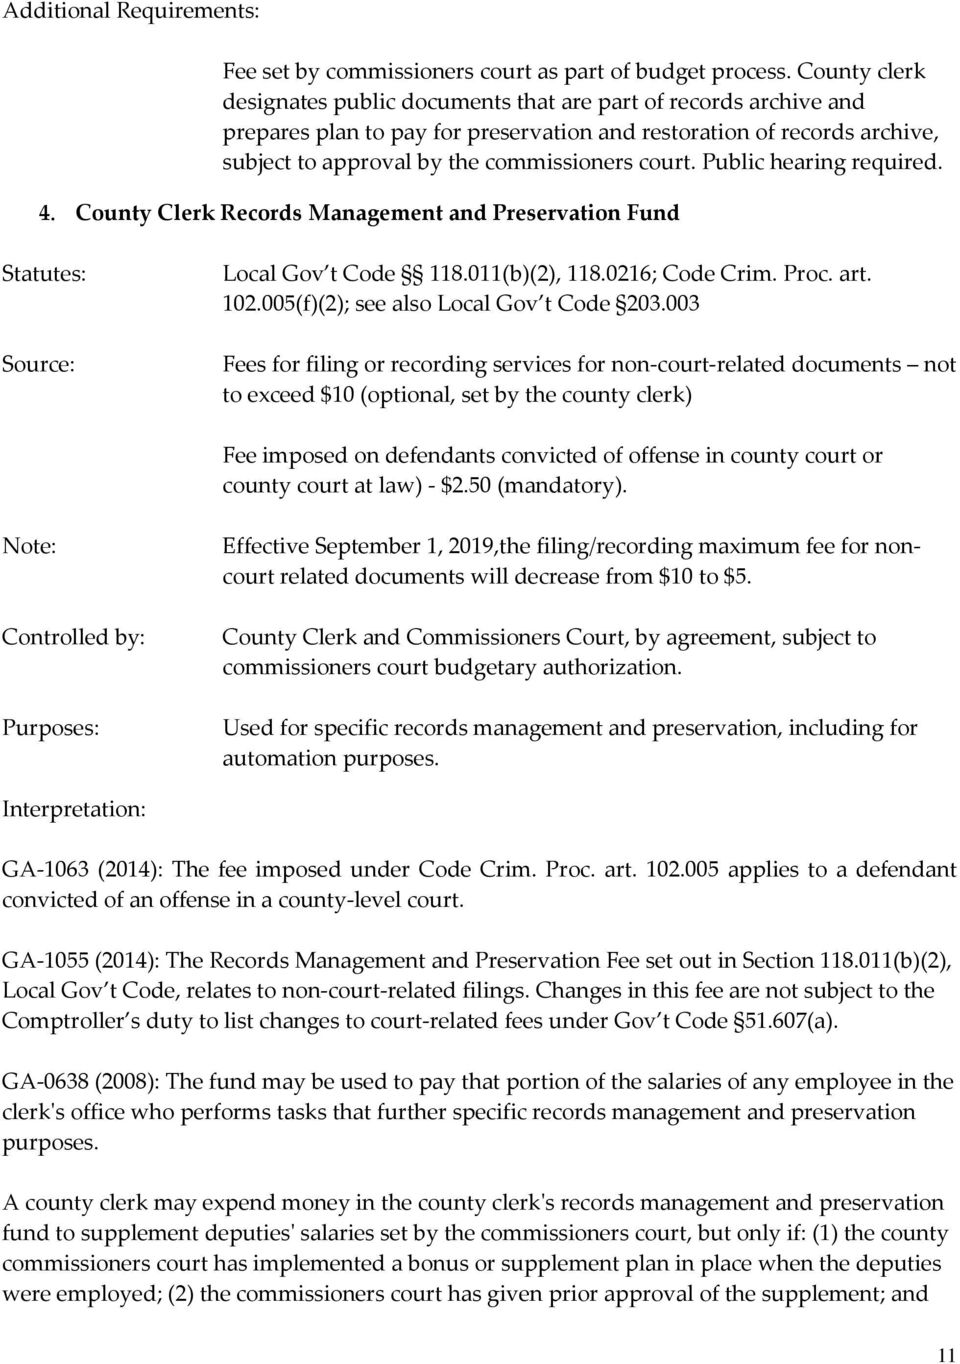 Public hearing required. 4. County Clerk Records Management and Preservation Fund Statutes: Local Gov t Code 118.011(b)(2), 118.0216; Code Crim. Proc. art. 102.